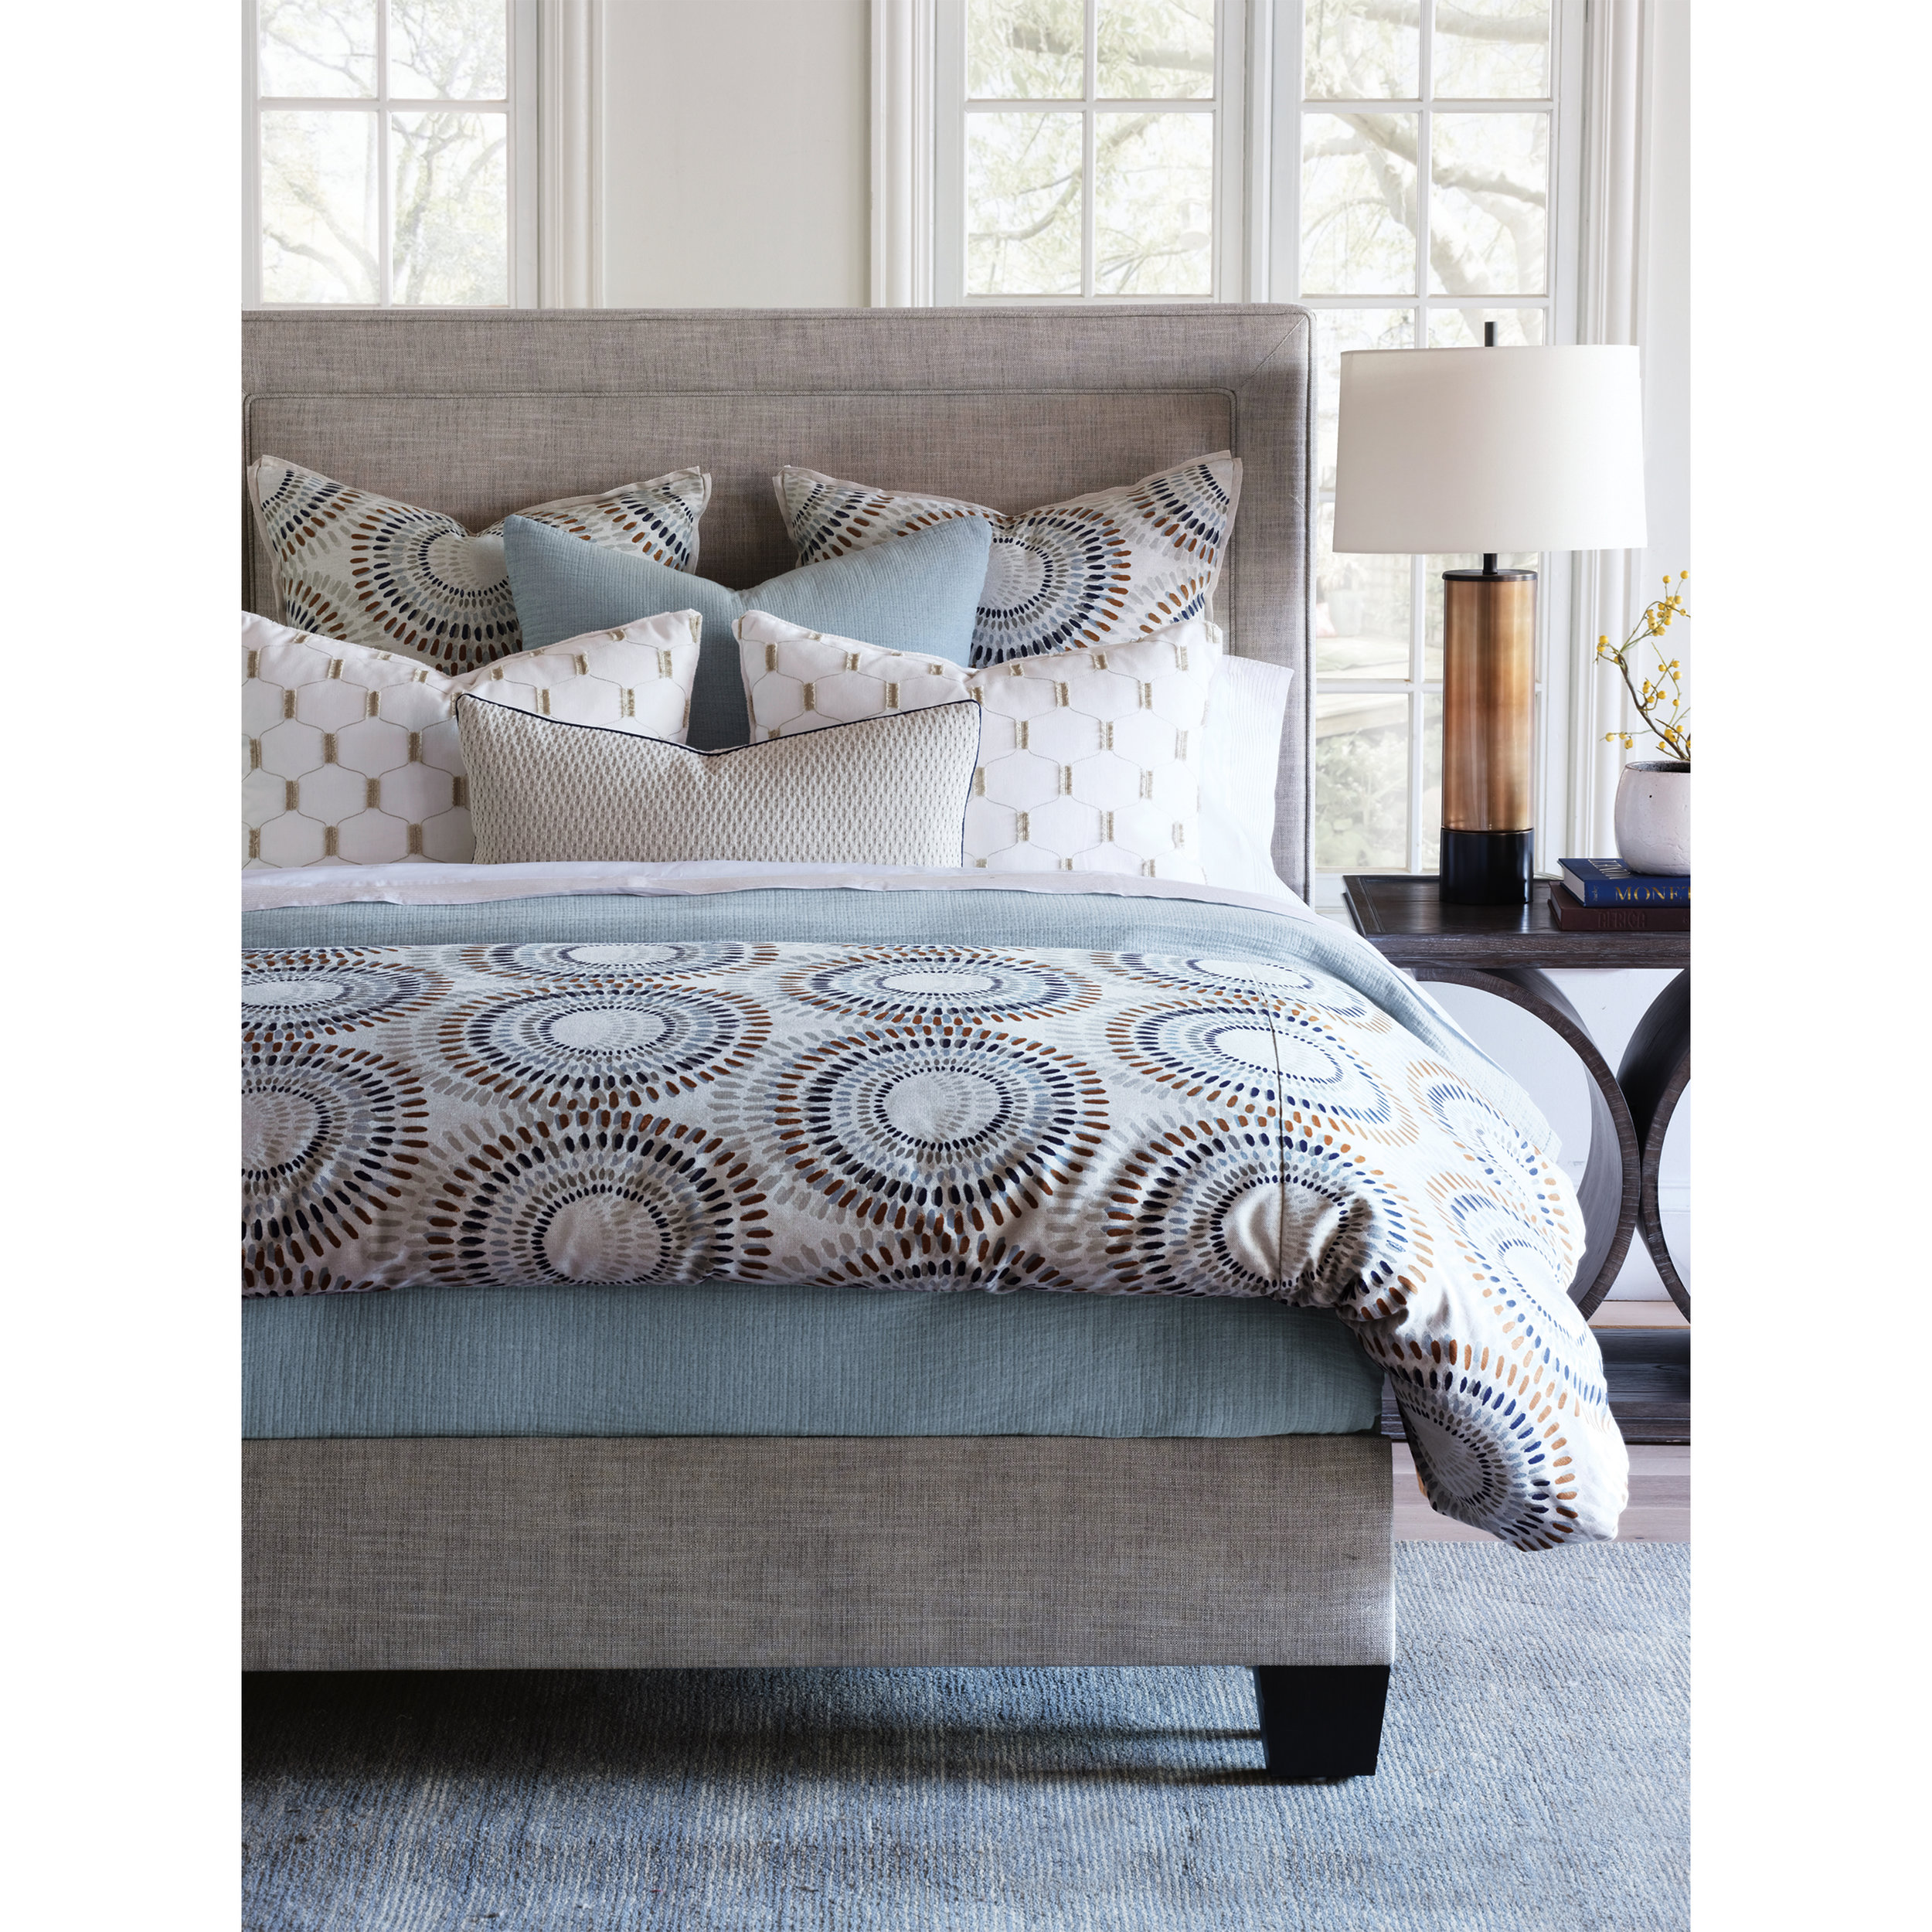 Duvet Covers And Comforters Filmore Geometric Duvet Cover And Comforter